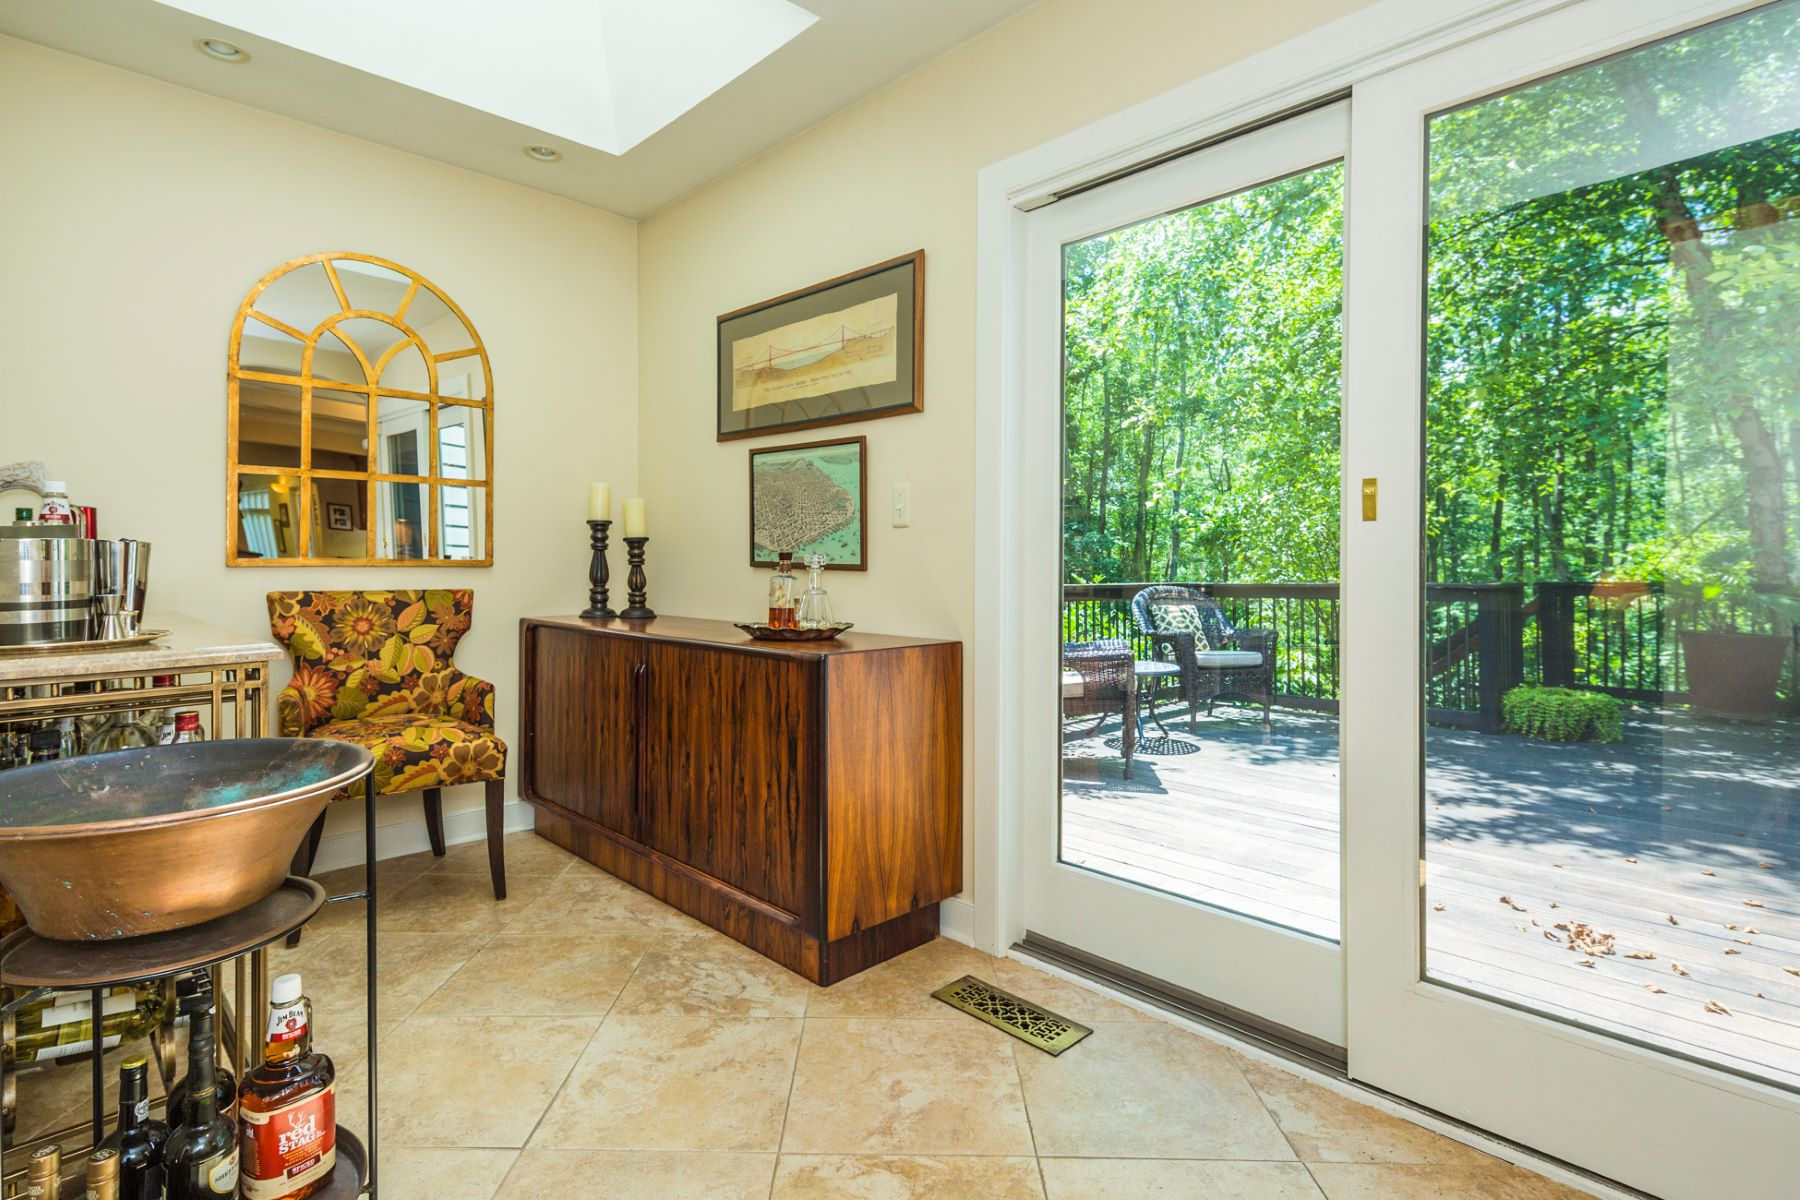 Additional photo for property listing at From Simple Pleasures to Ultimate Luxuries - Montgomery Township 54 Sourland Hills Road Skillman, Нью-Джерси 08558 Соединенные Штаты